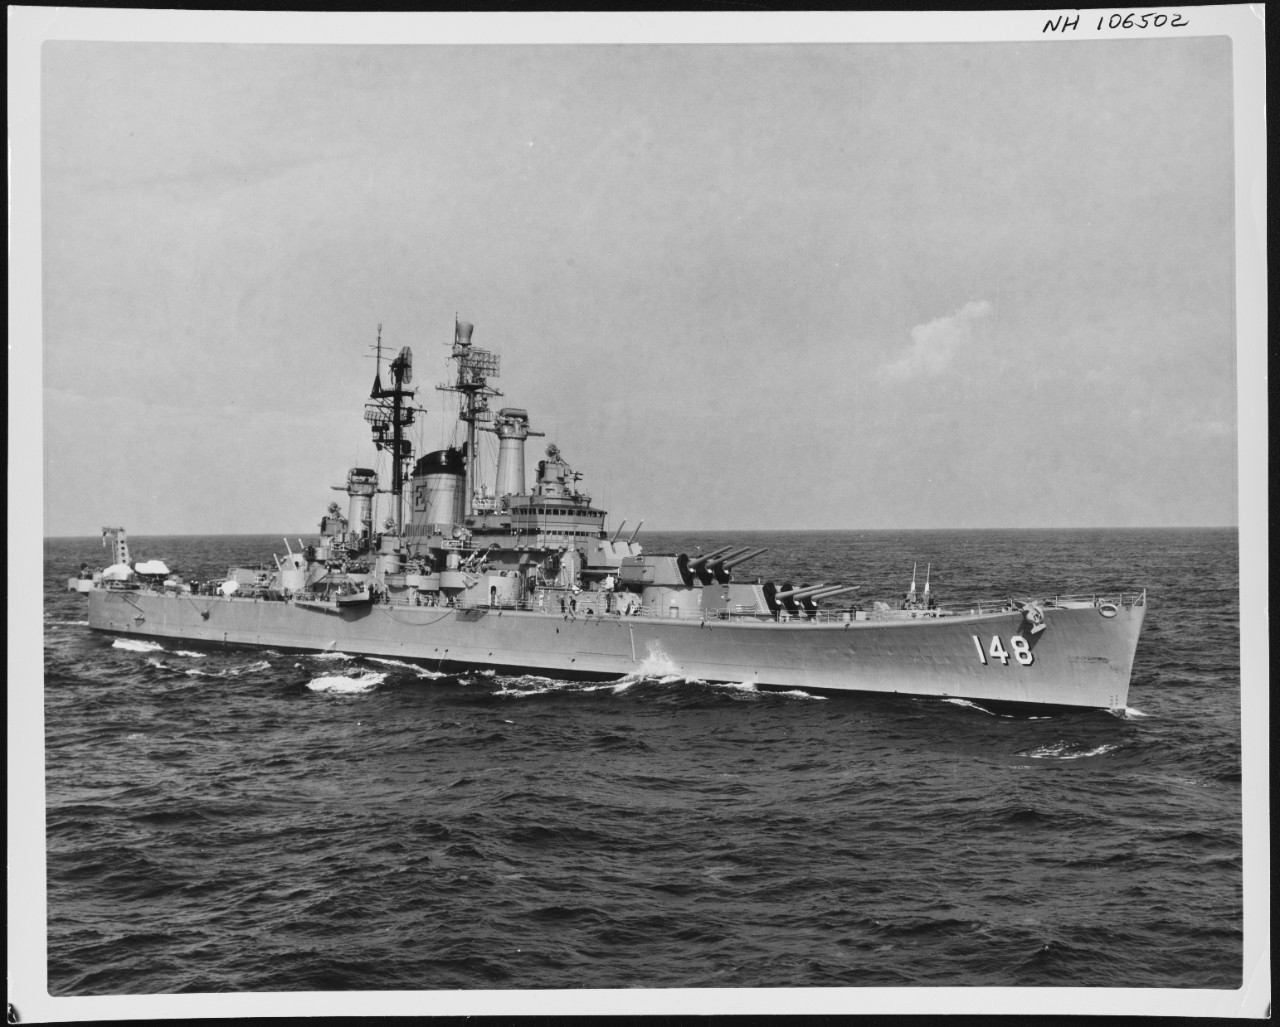 Photo #: NH 106502  USS Newport News